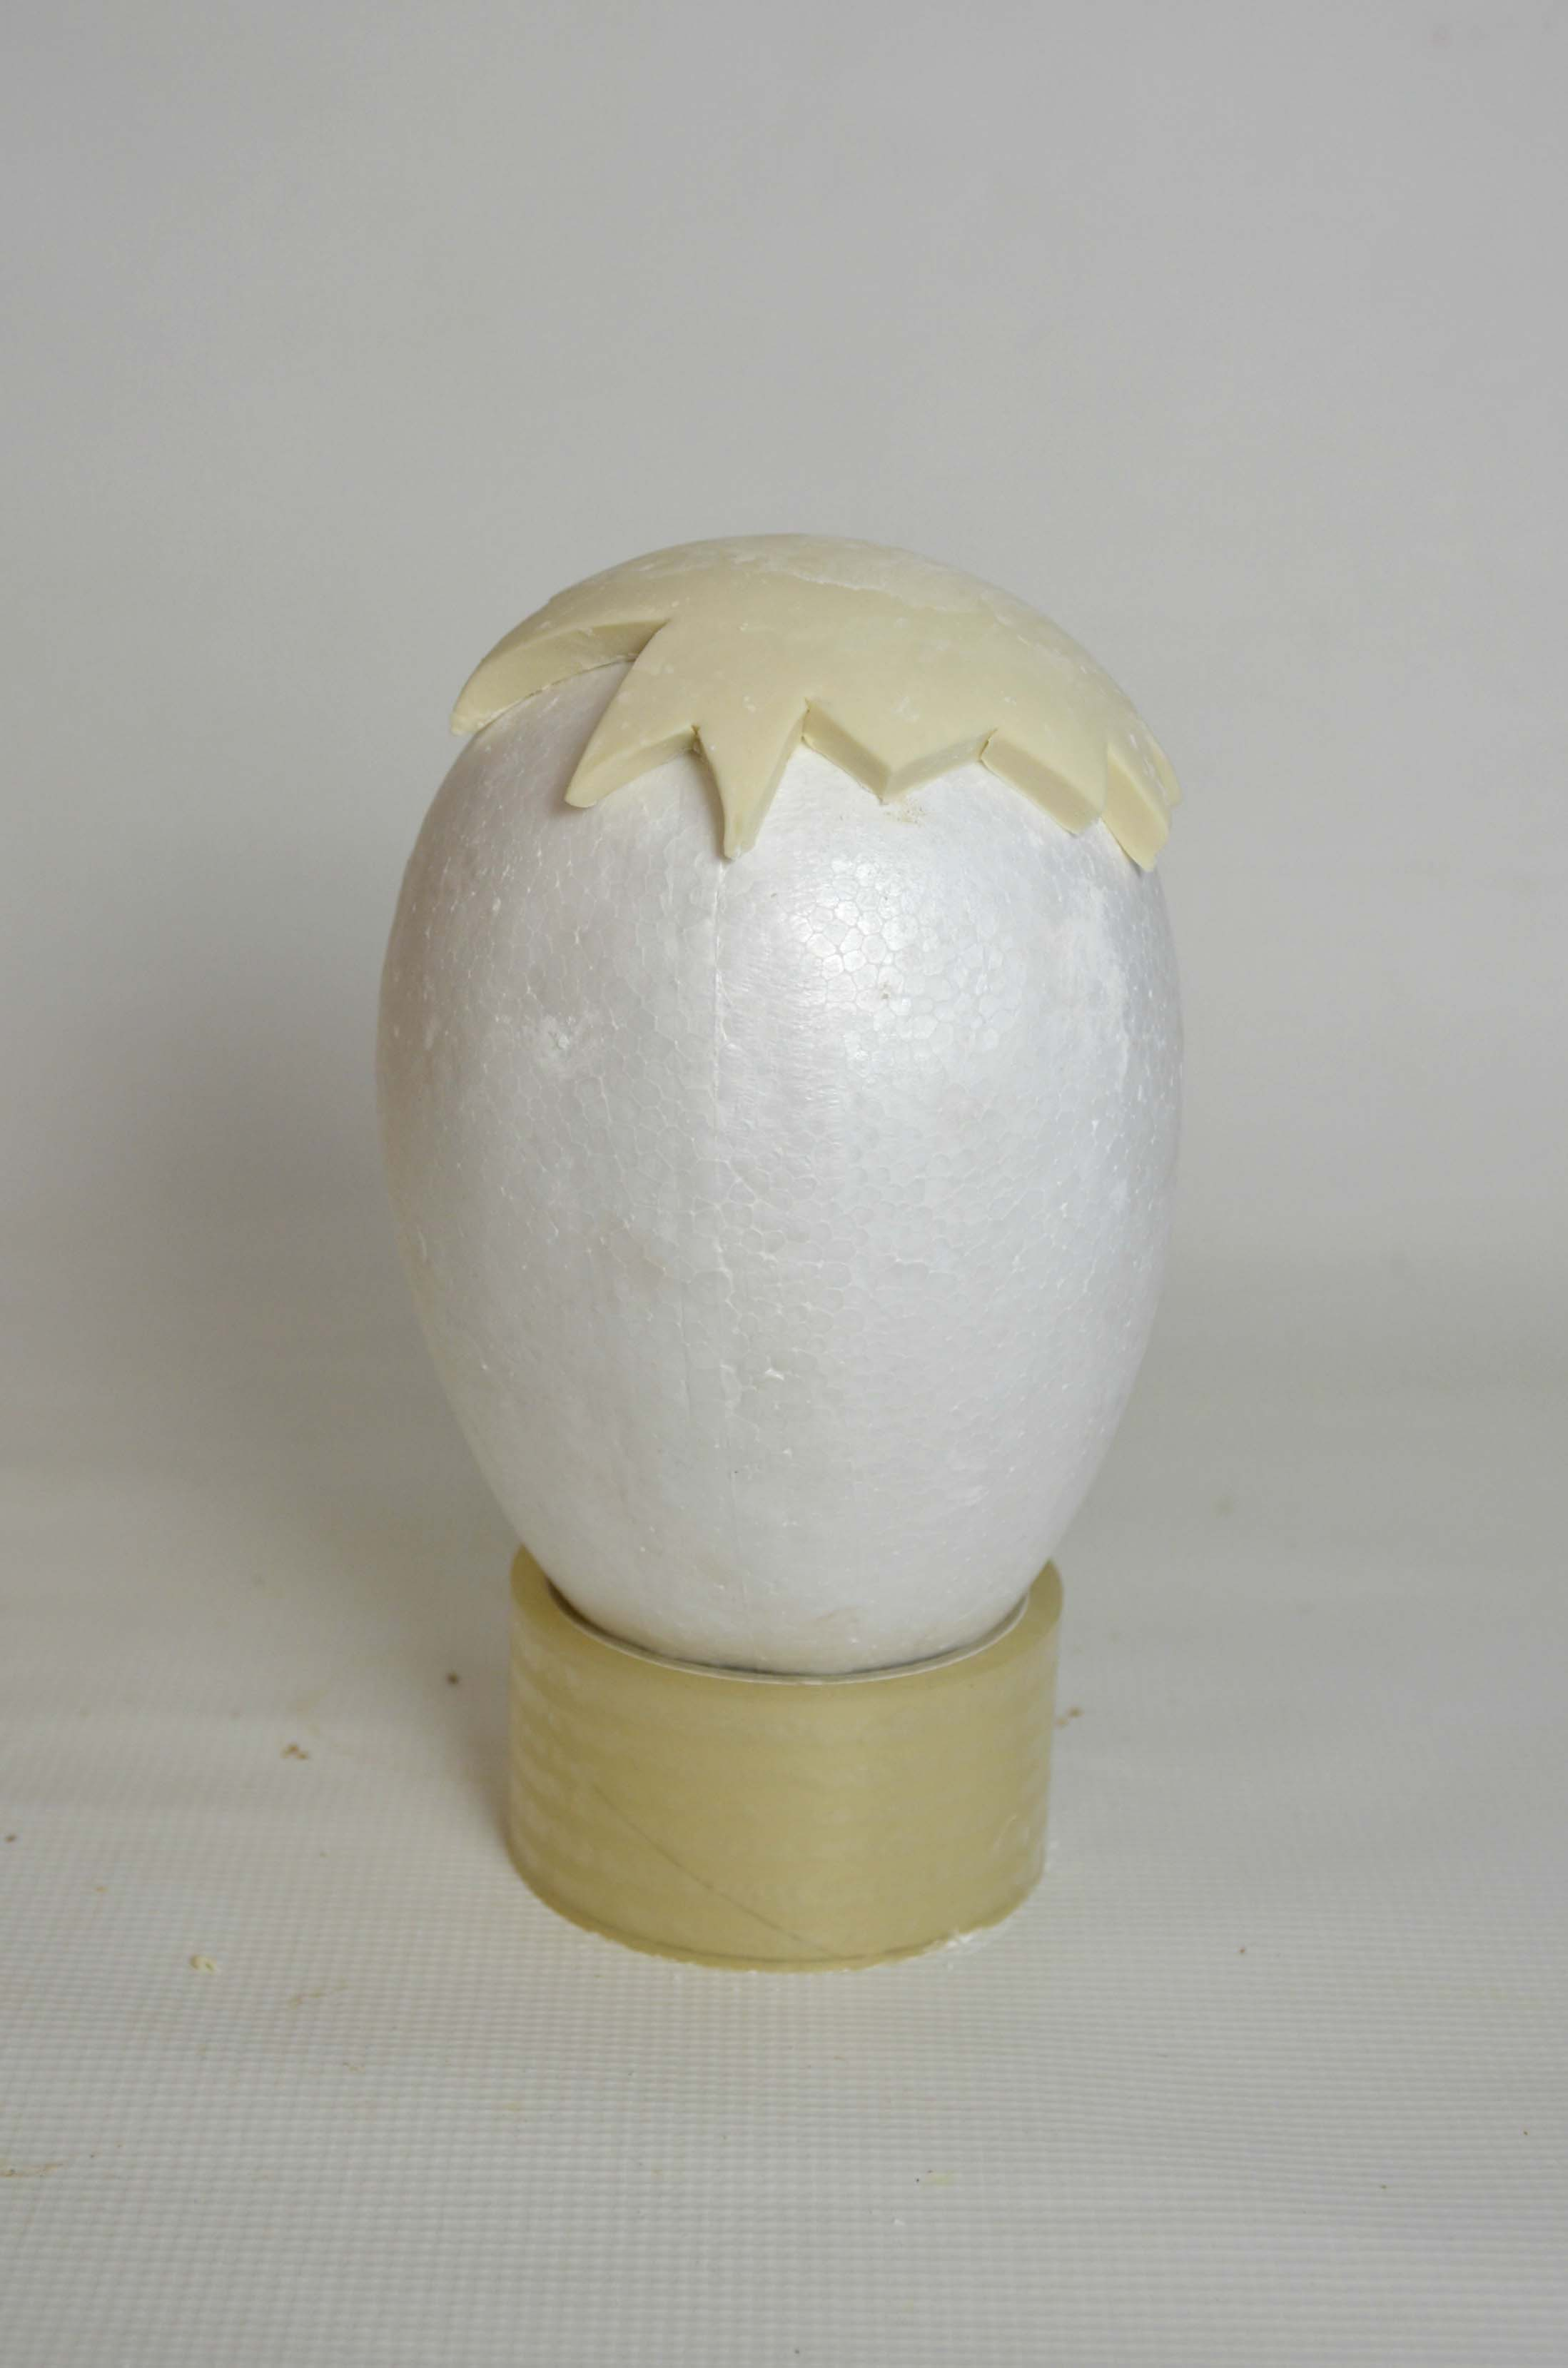 Sugarpaste lid drying on polystyrene egg